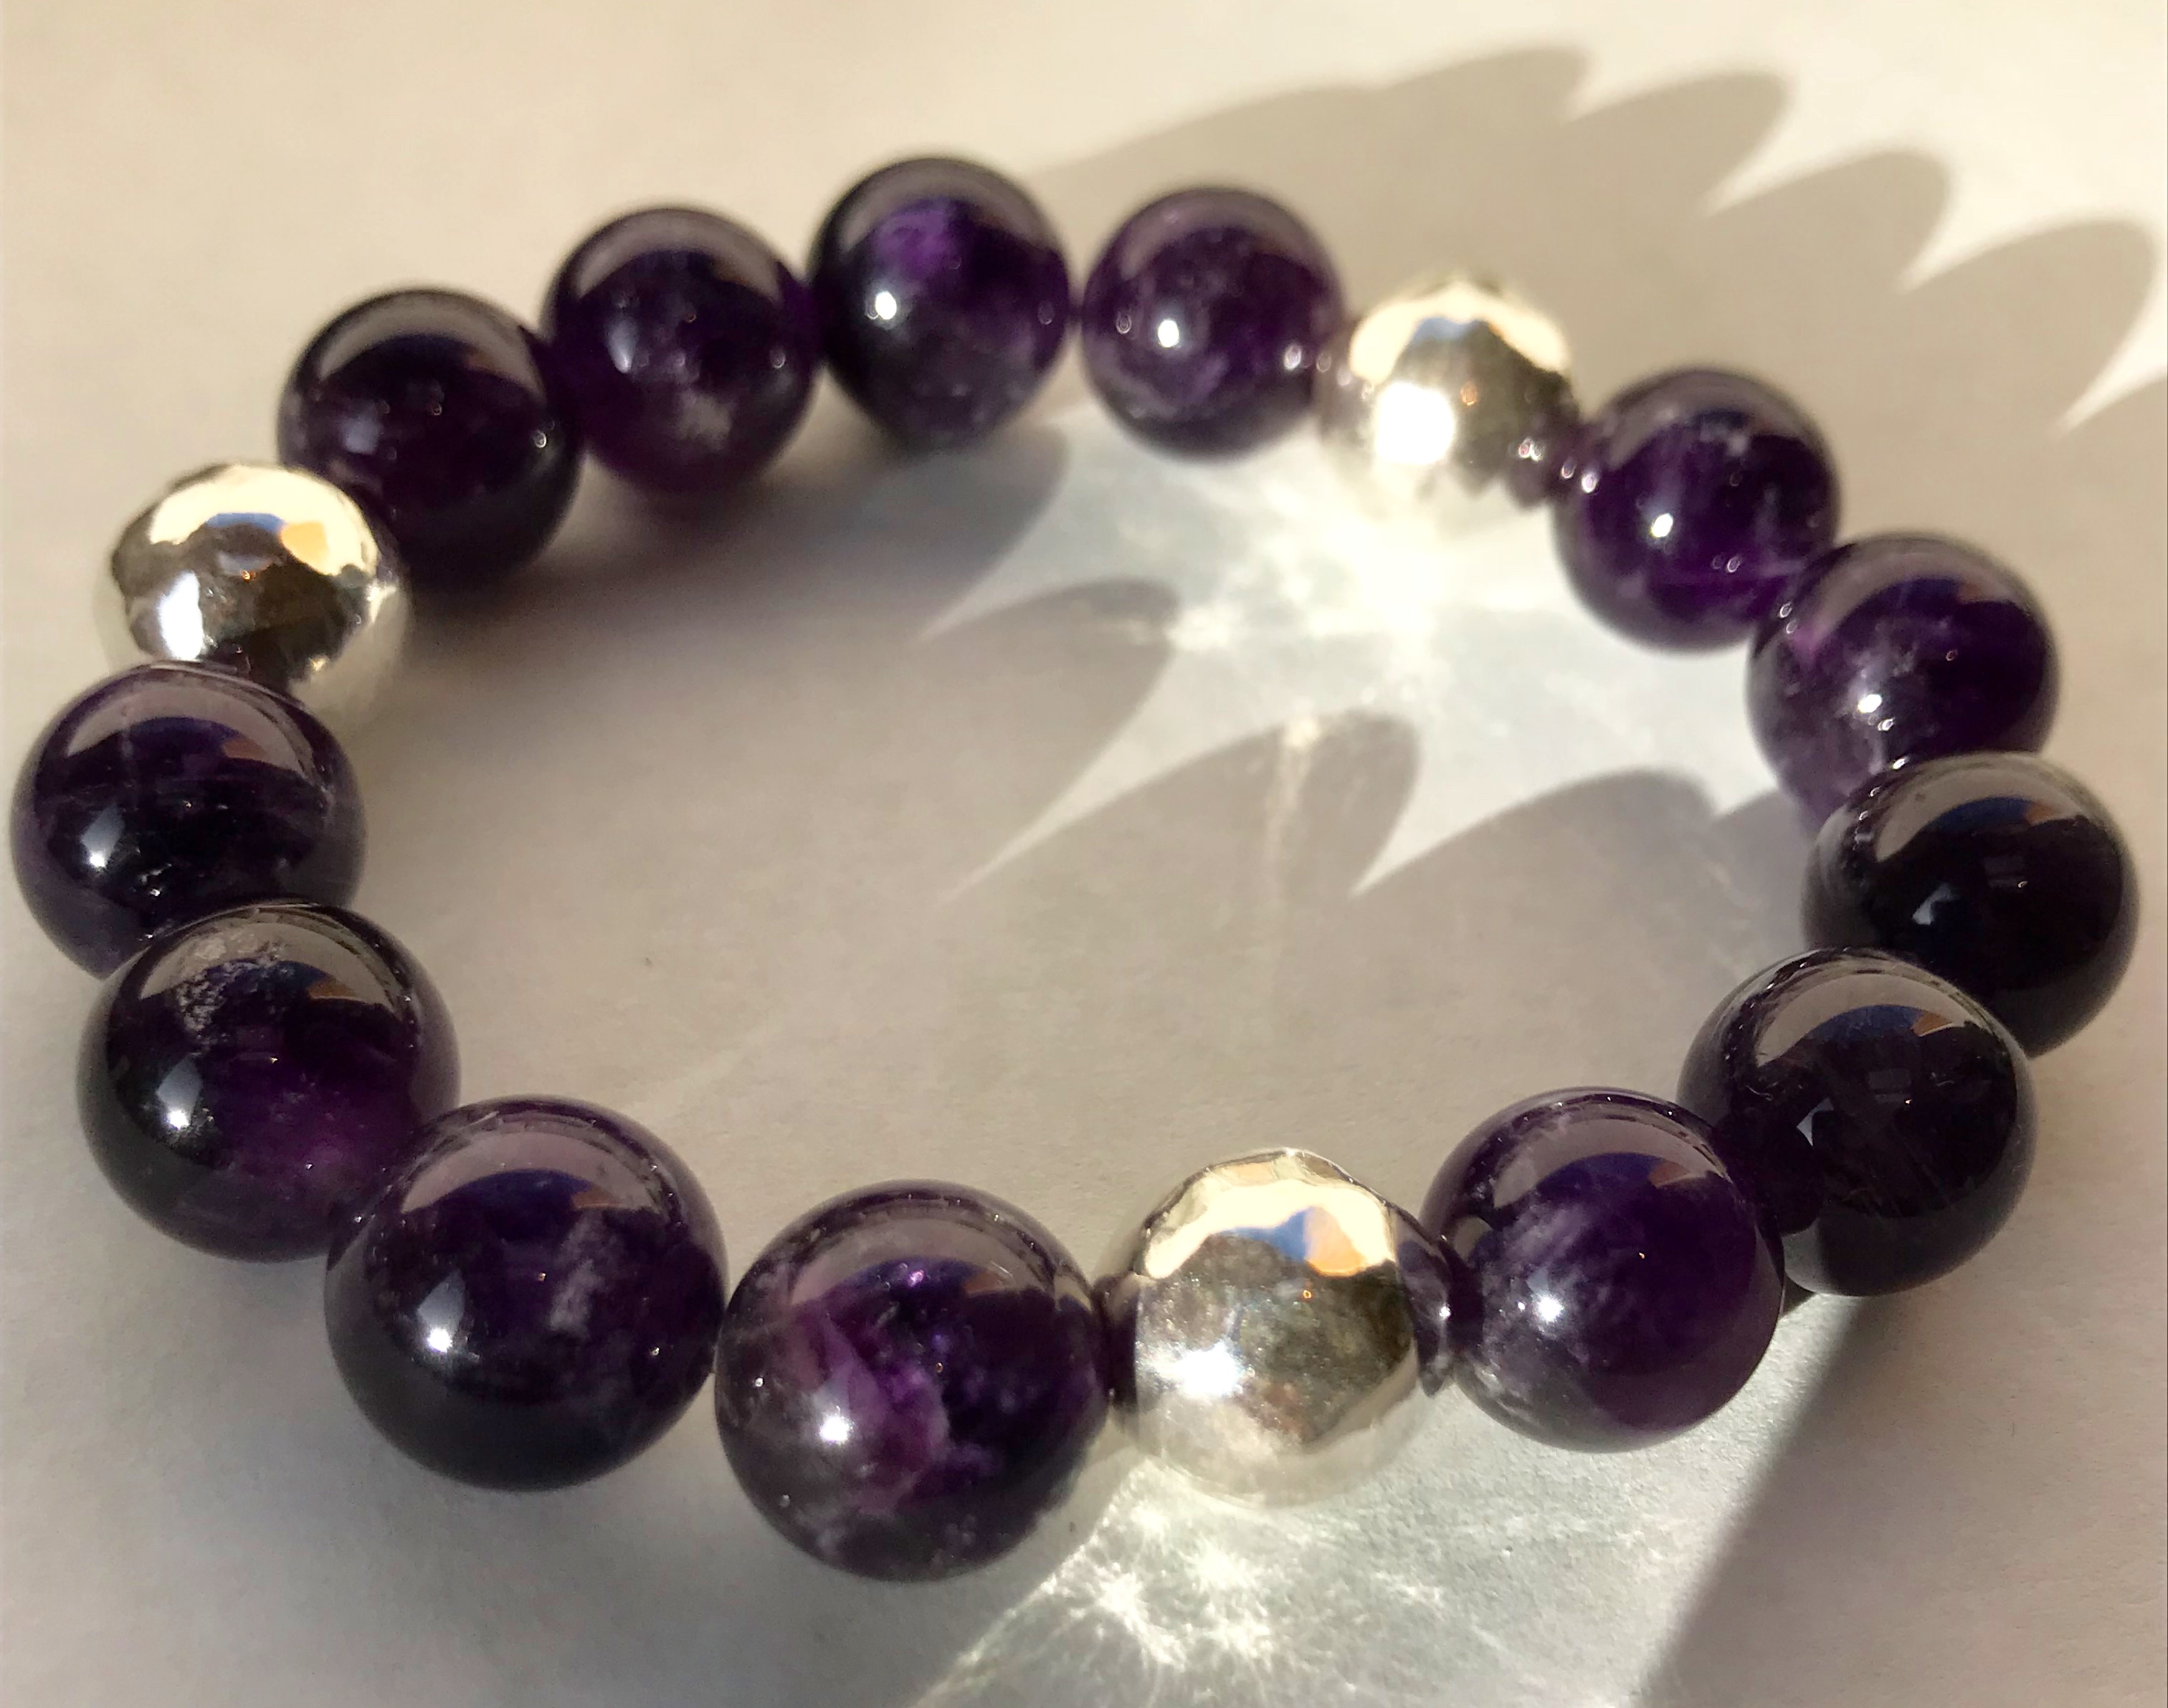 from in beads women bangles bracelet bracelets for tree life fashion designer of gift jewelry item stone crystal with strand purple brand natural